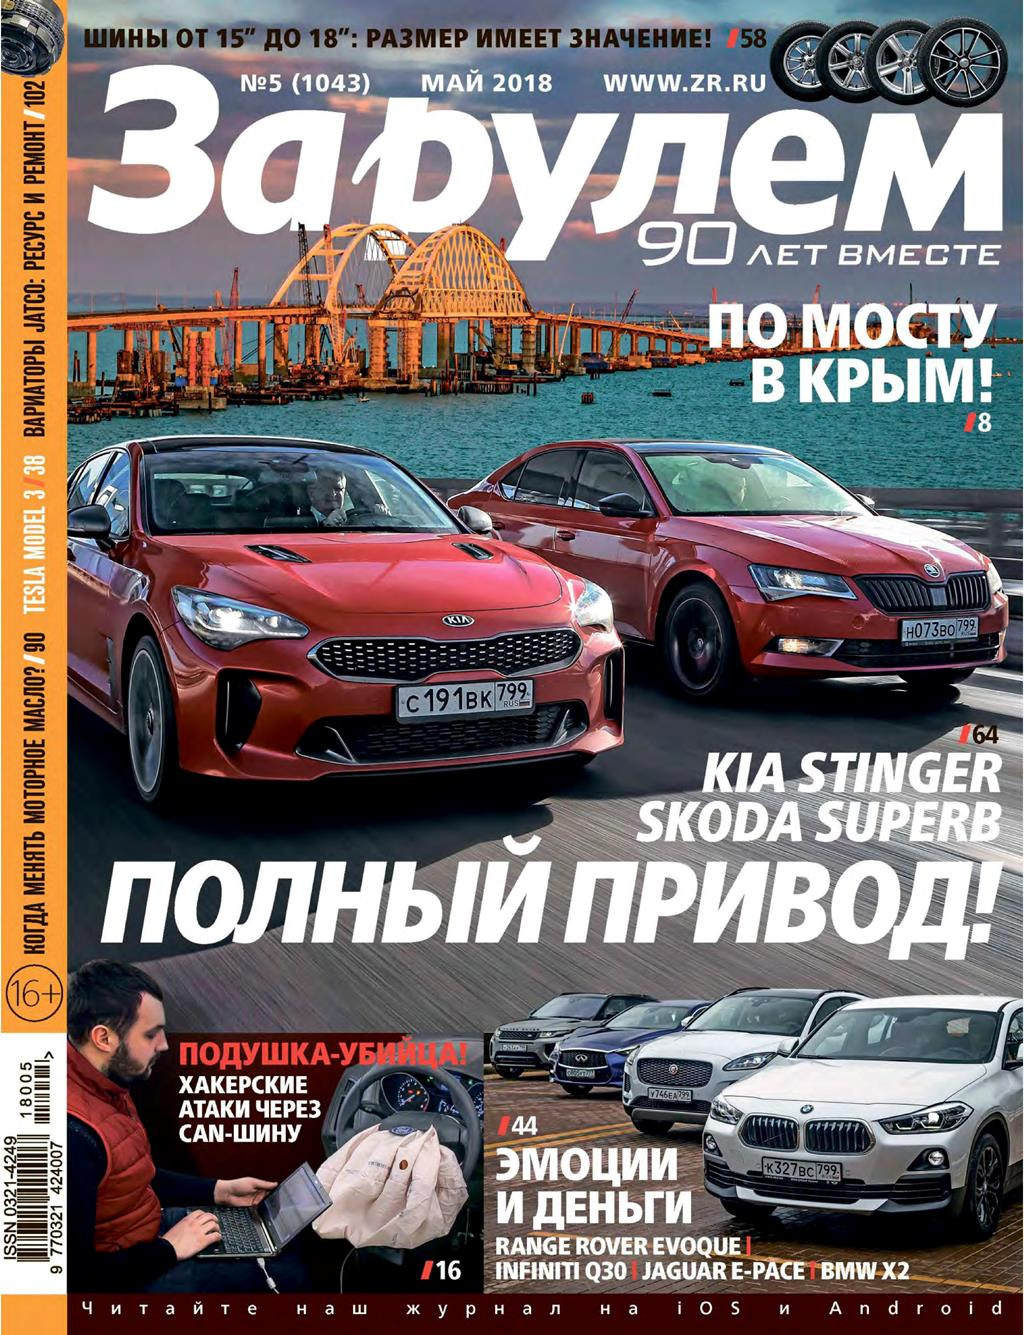 http://jni-motors.ru/images/blog/ZR1043/Page1.jpg